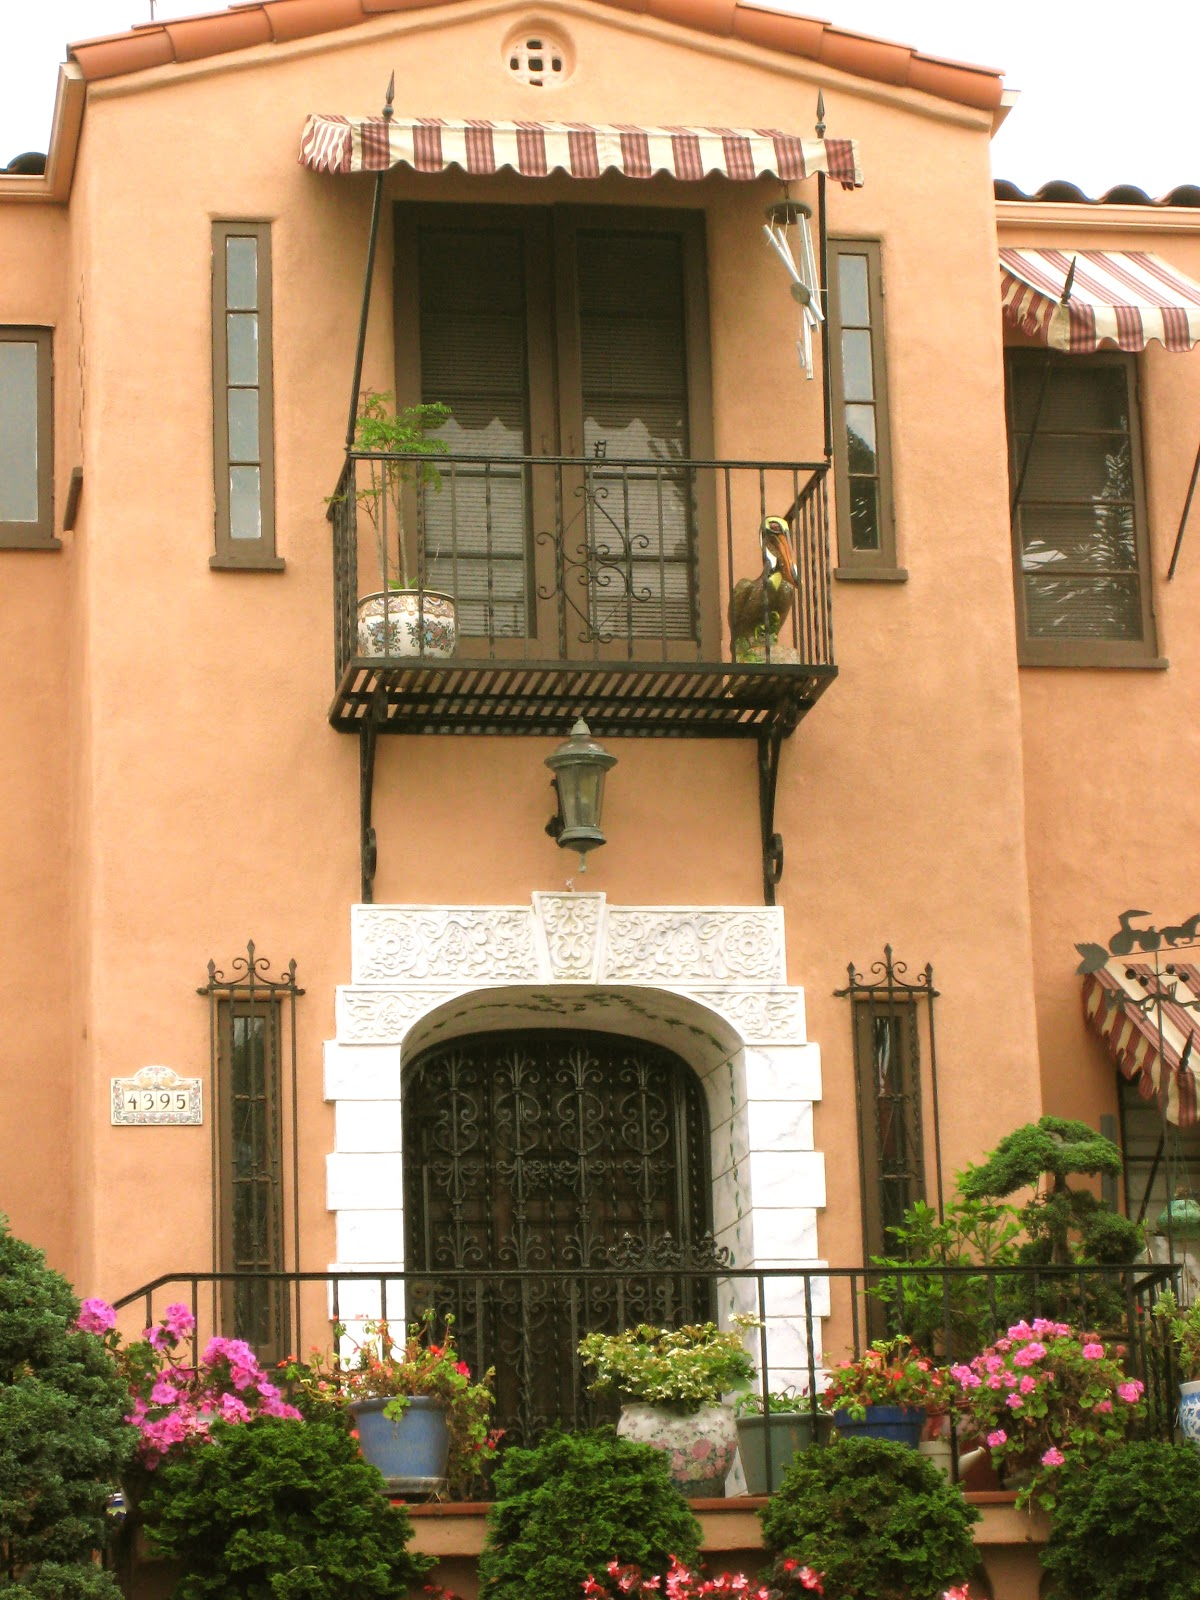 G 1 House Design: Thrifty Nifty Things: Spanish Style Homes